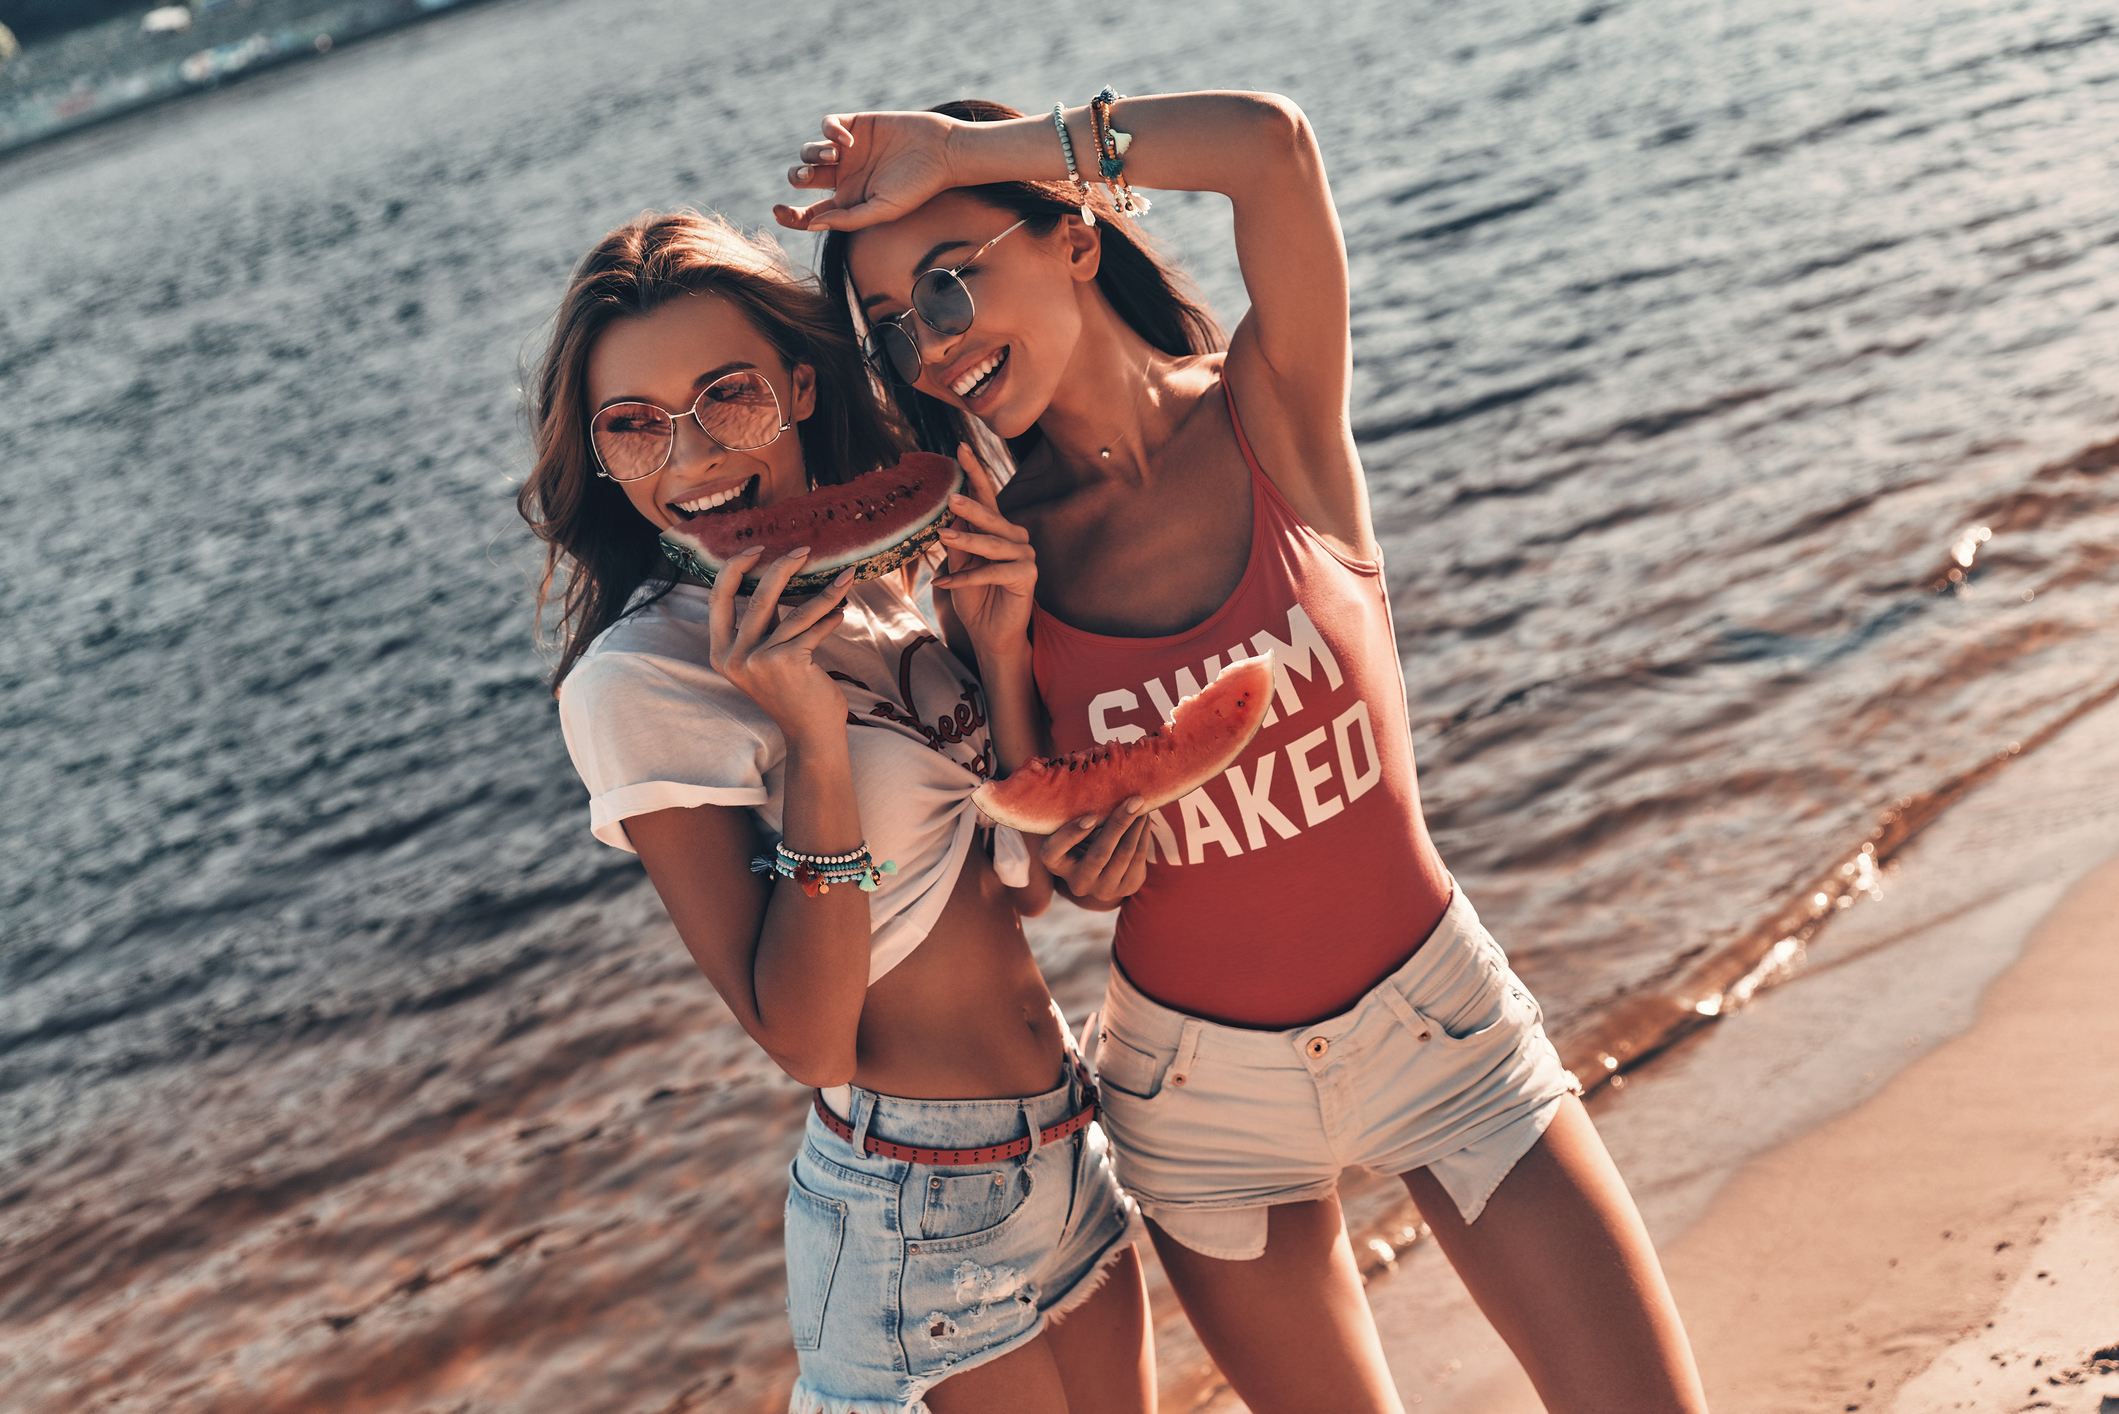 Top view of attractive young women smiling and eating watermelon while standing near the river